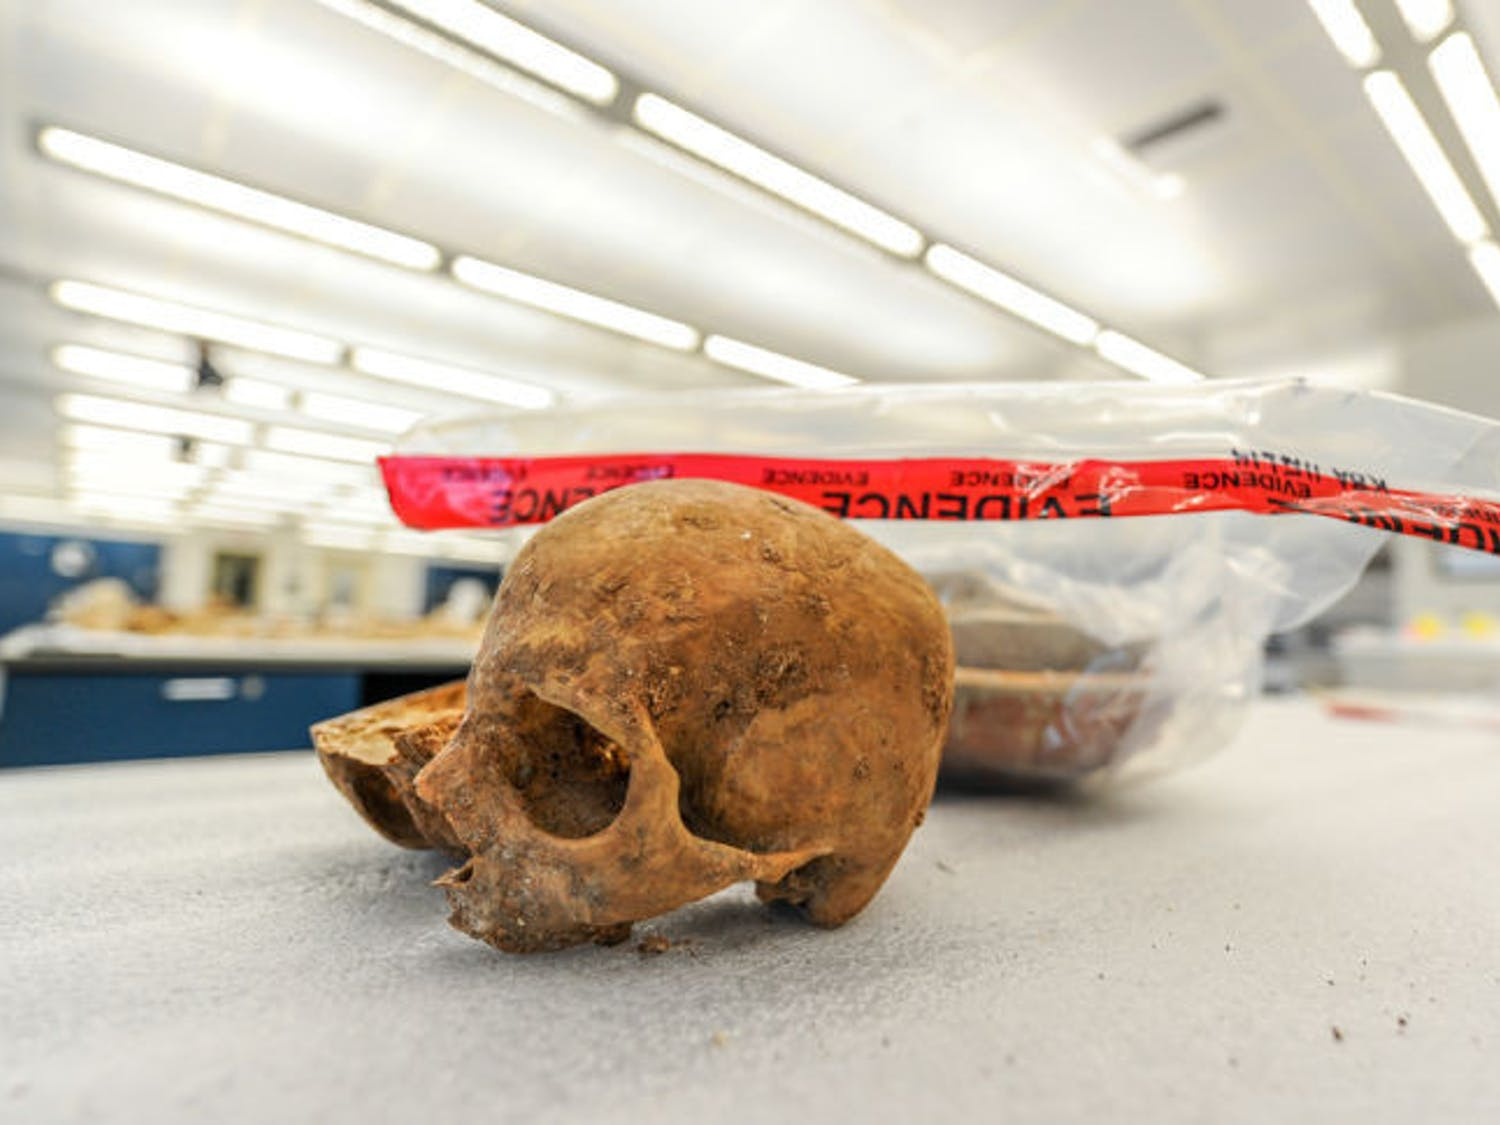 A skull confiscated in Fort Lauderdale from travelers incoming from Cuba was suspected to have been used in voodoo ceremonies. It is part of the C.A. Pound Human Identification Laboratory's collections.